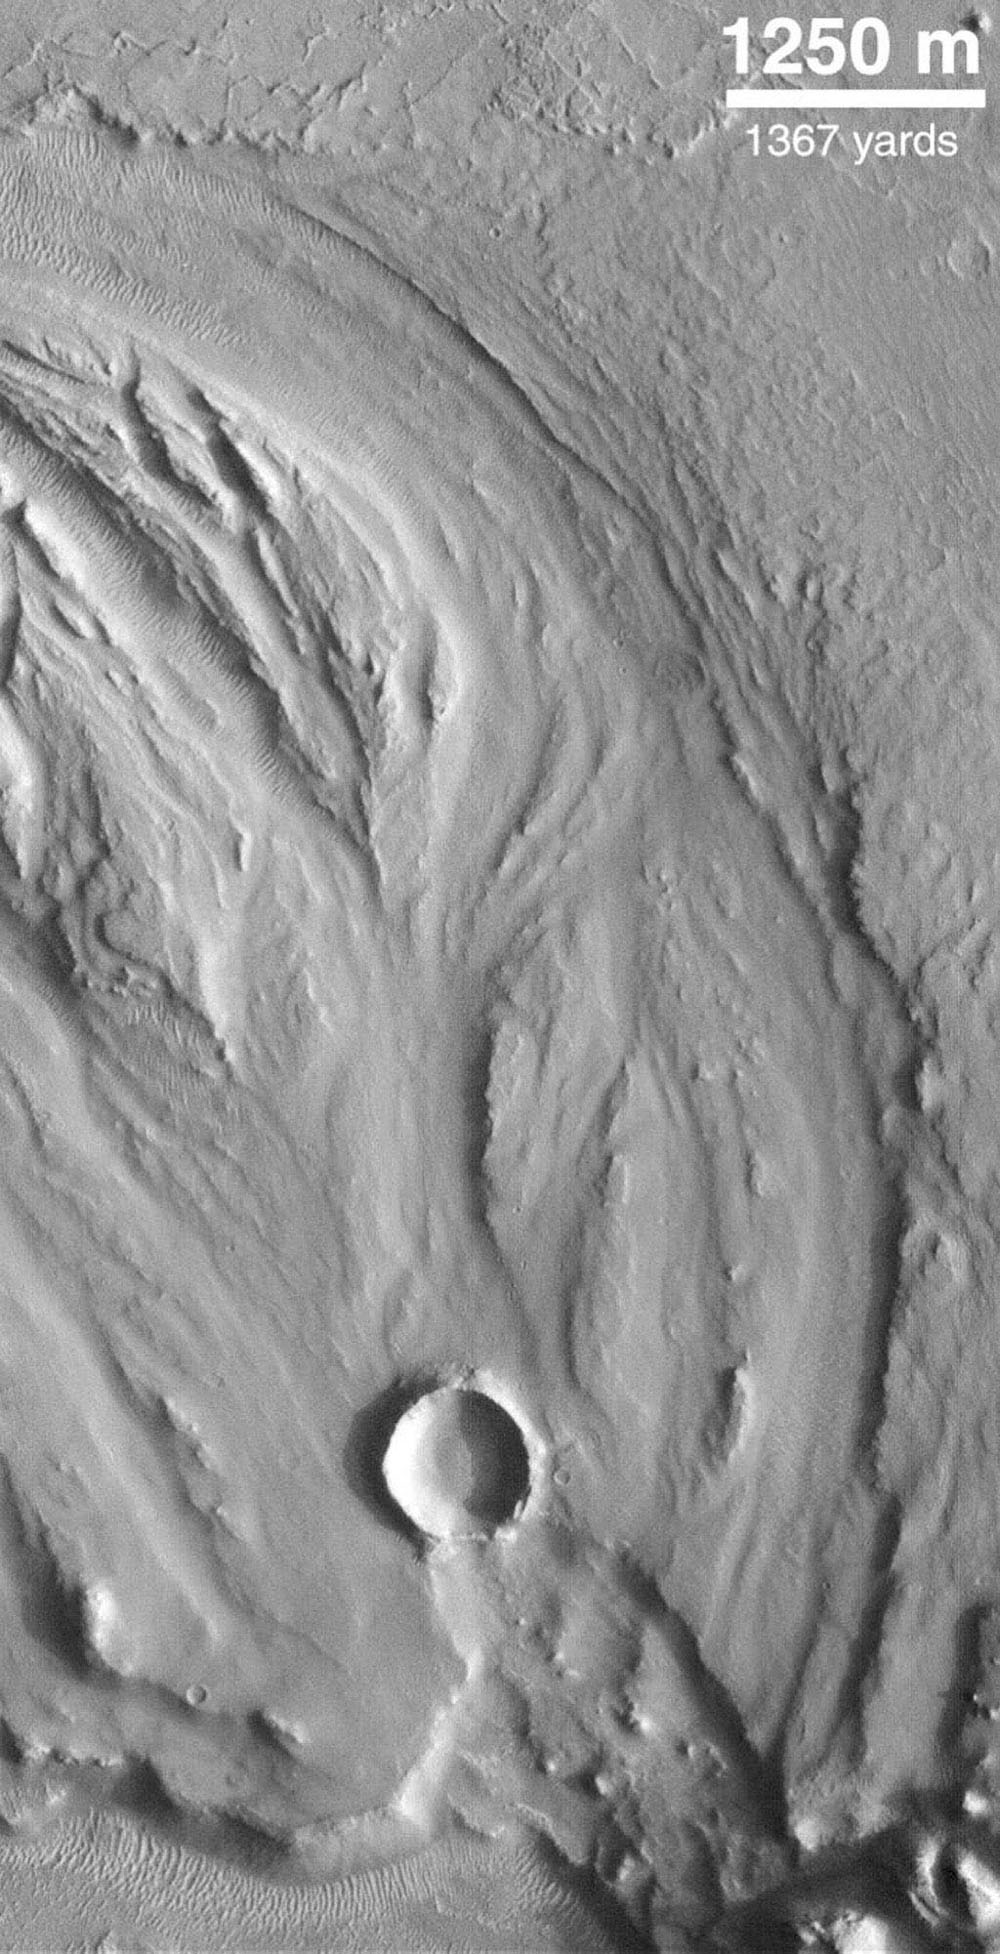 NASA's Mars Global Surveyor shows a fluid-scoured surface in the Hrad Vallis system, located northwest of Elysium Mons on Mars. The fluid is presumed to have been water.